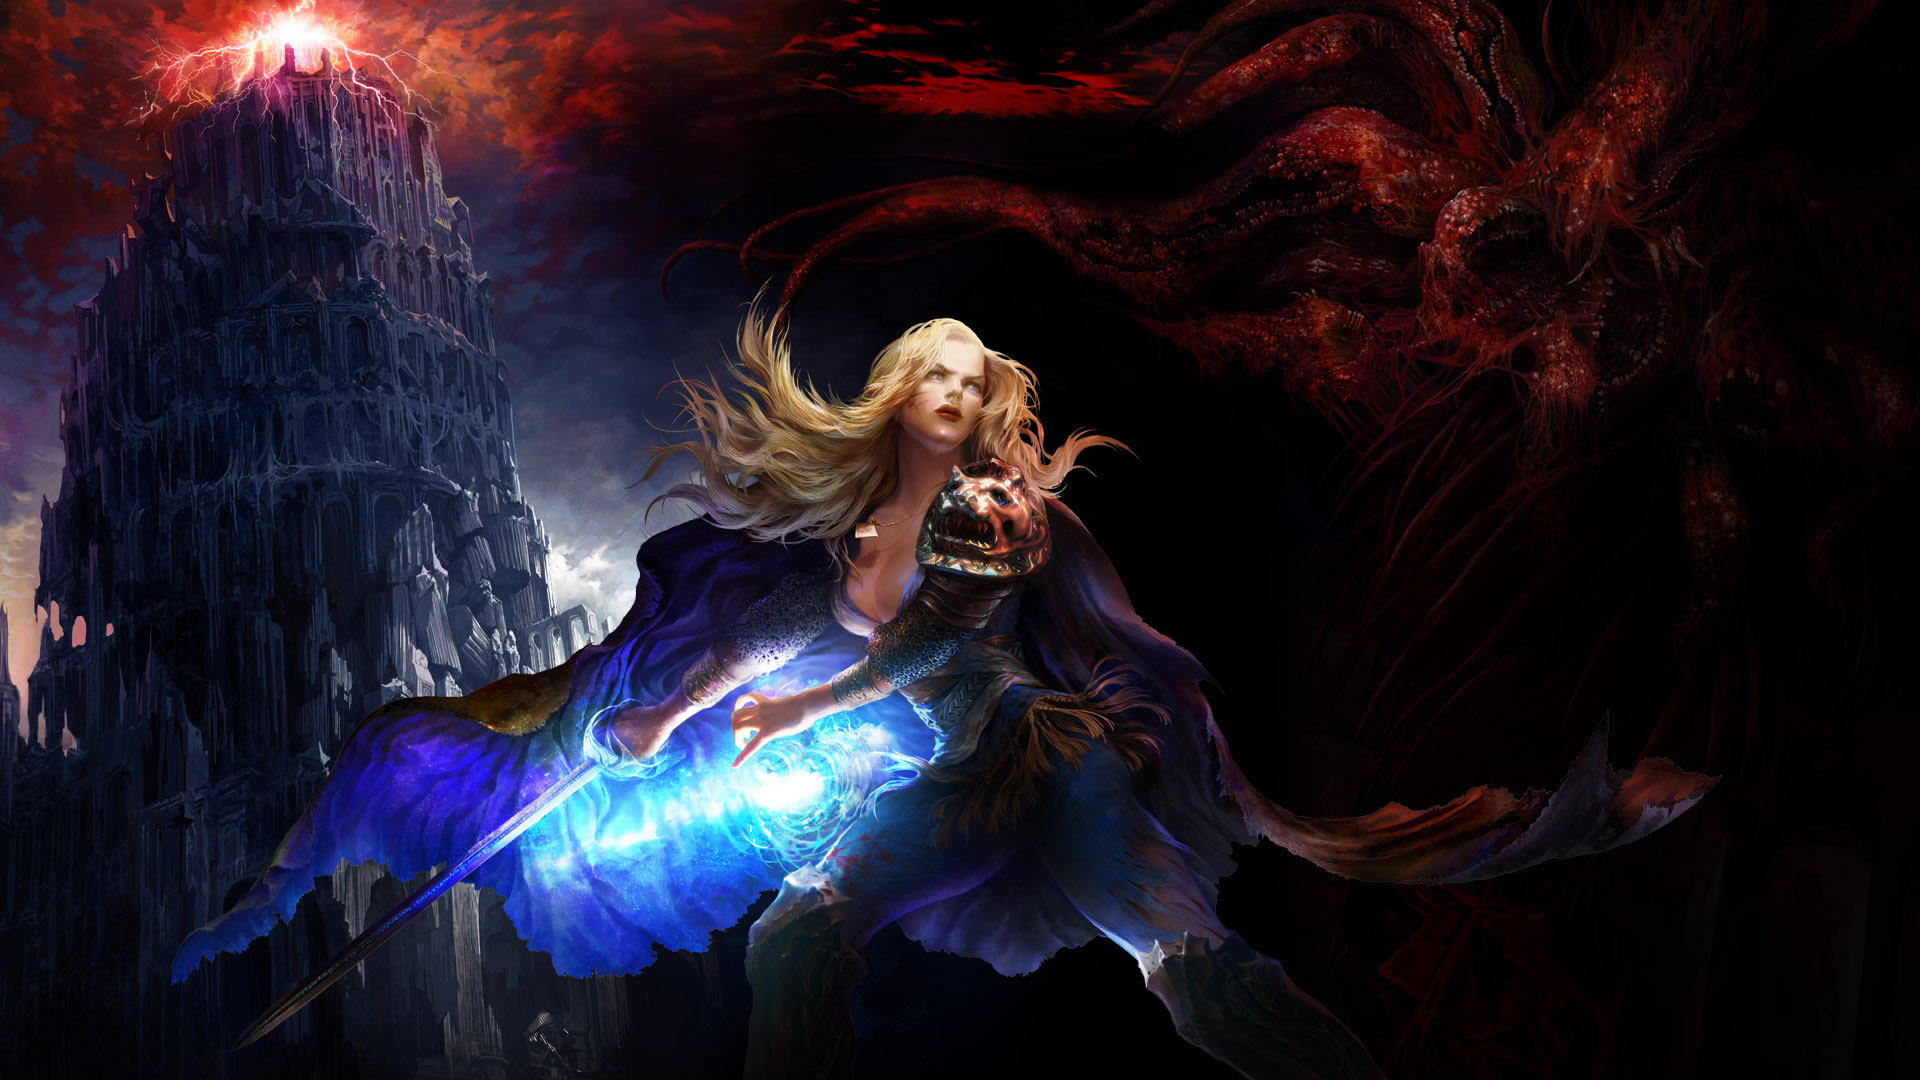 Path of Exile Class Scion Wallpaper 01